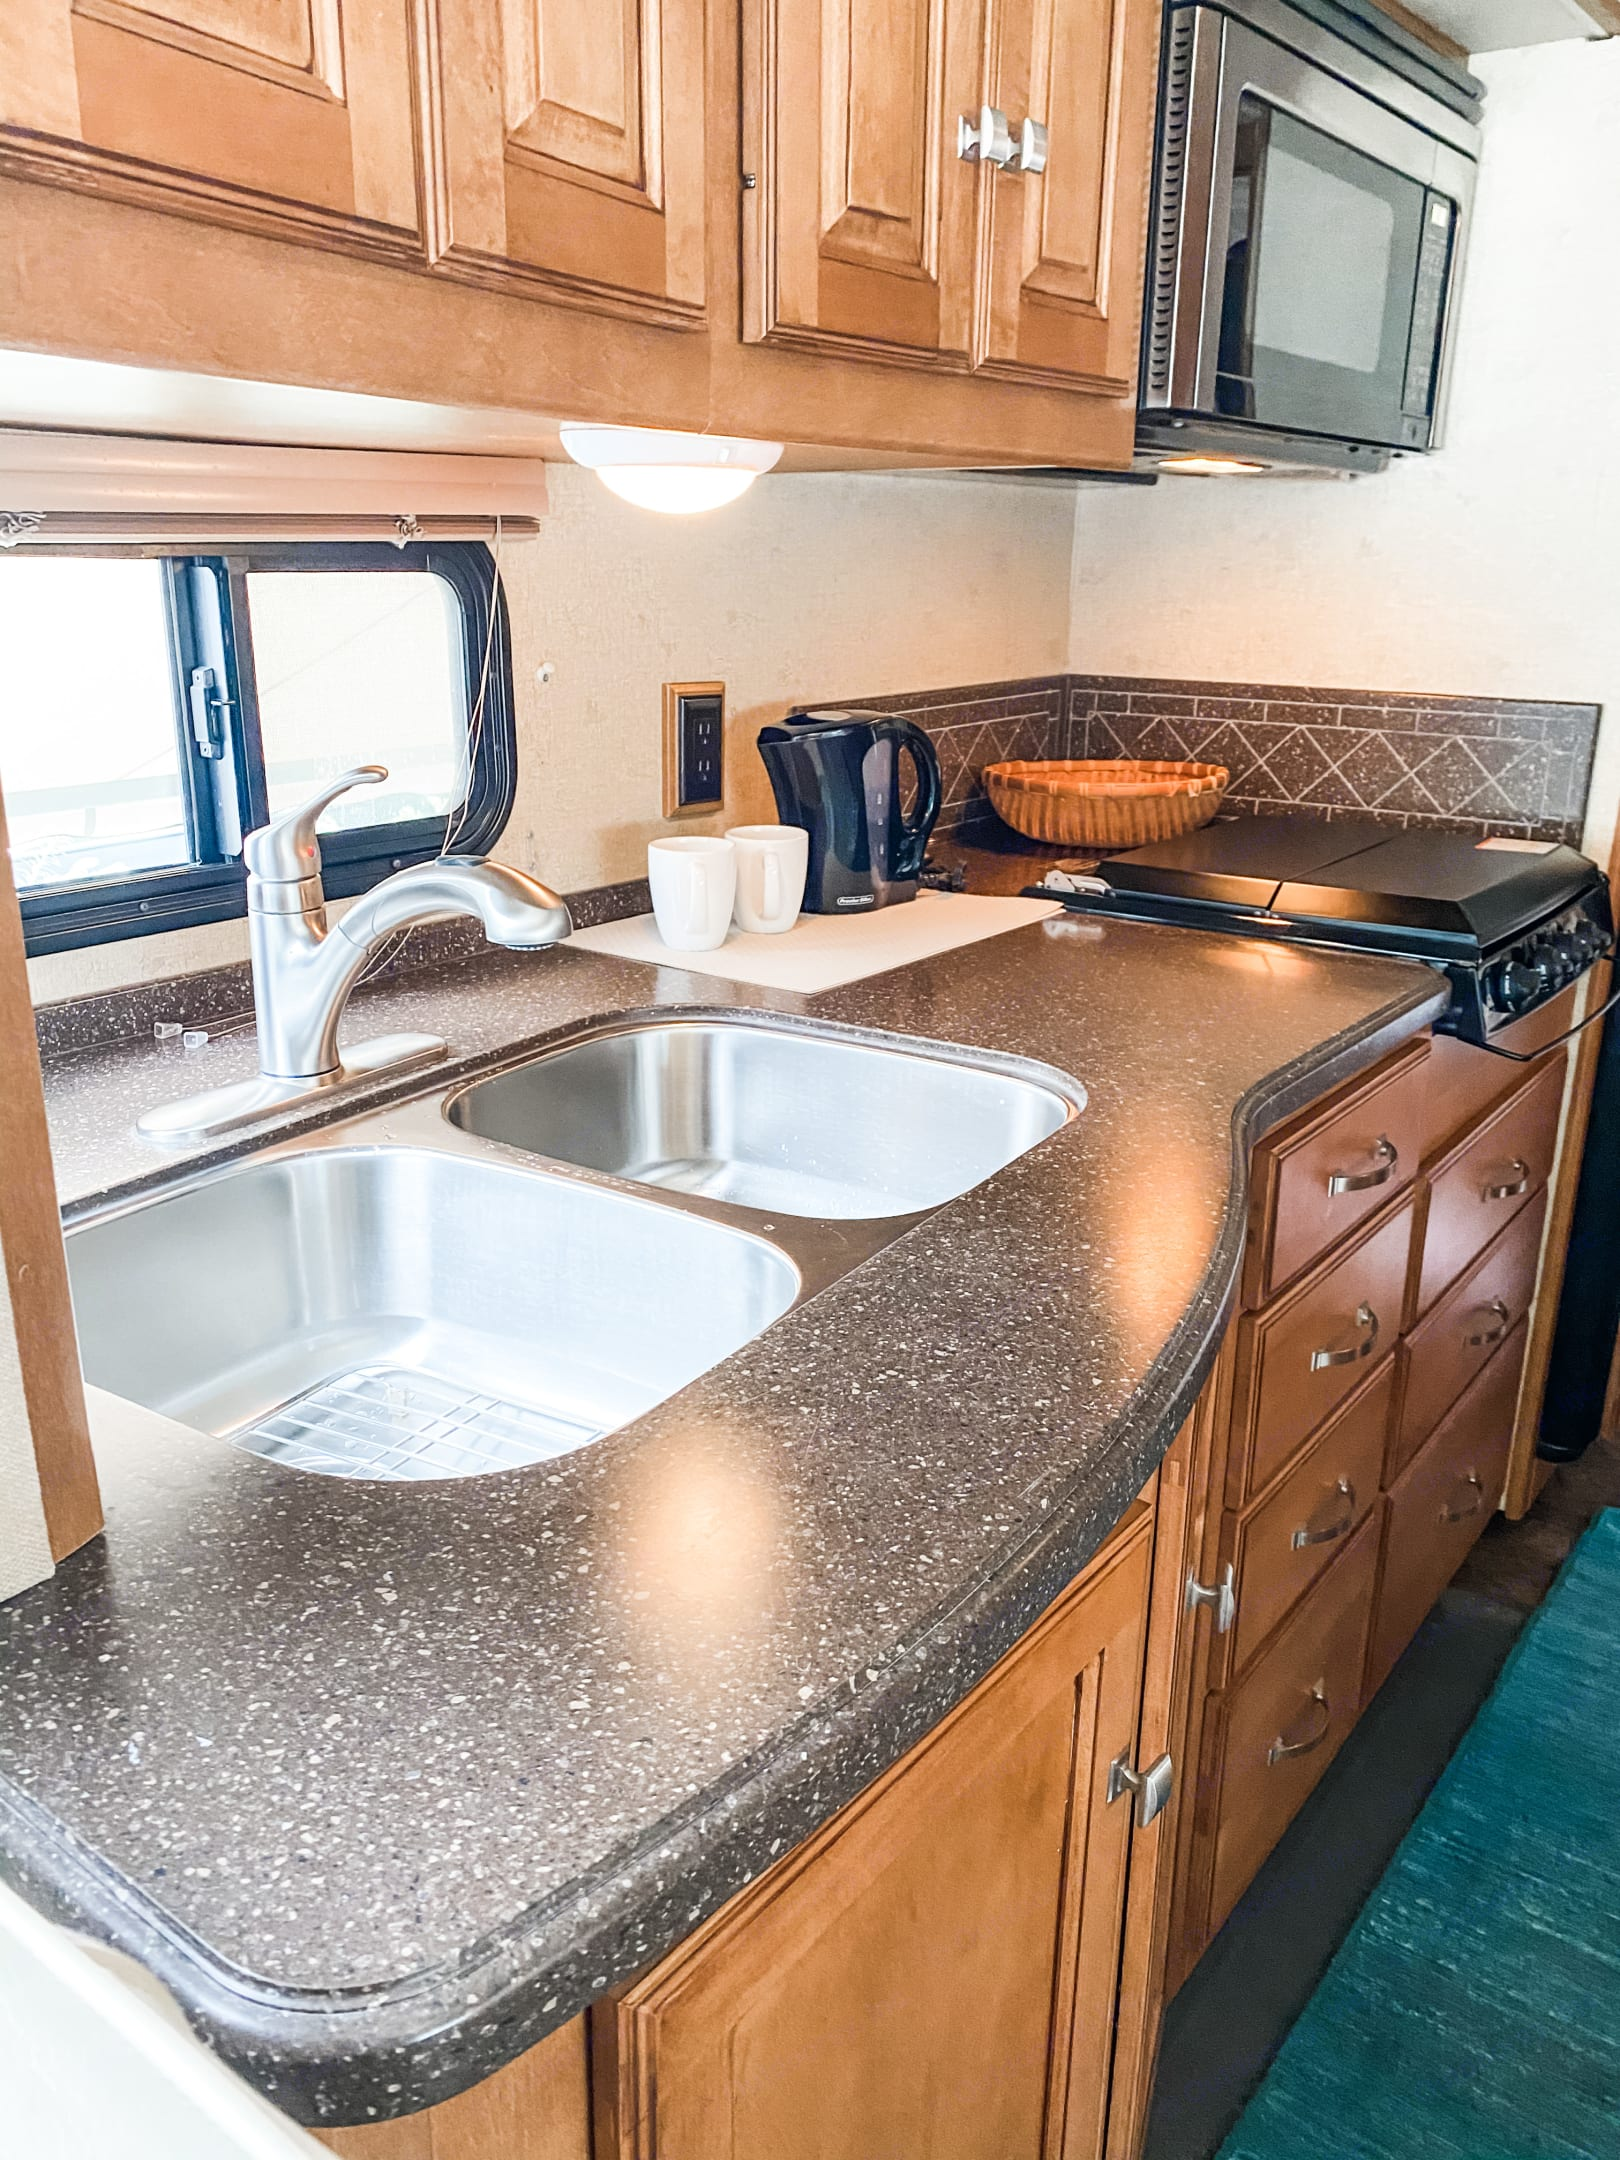 Double stainless steel sink makes clean up easy. Upgraded faucet extends and has different modes. . Winnebago Sightseer 2013